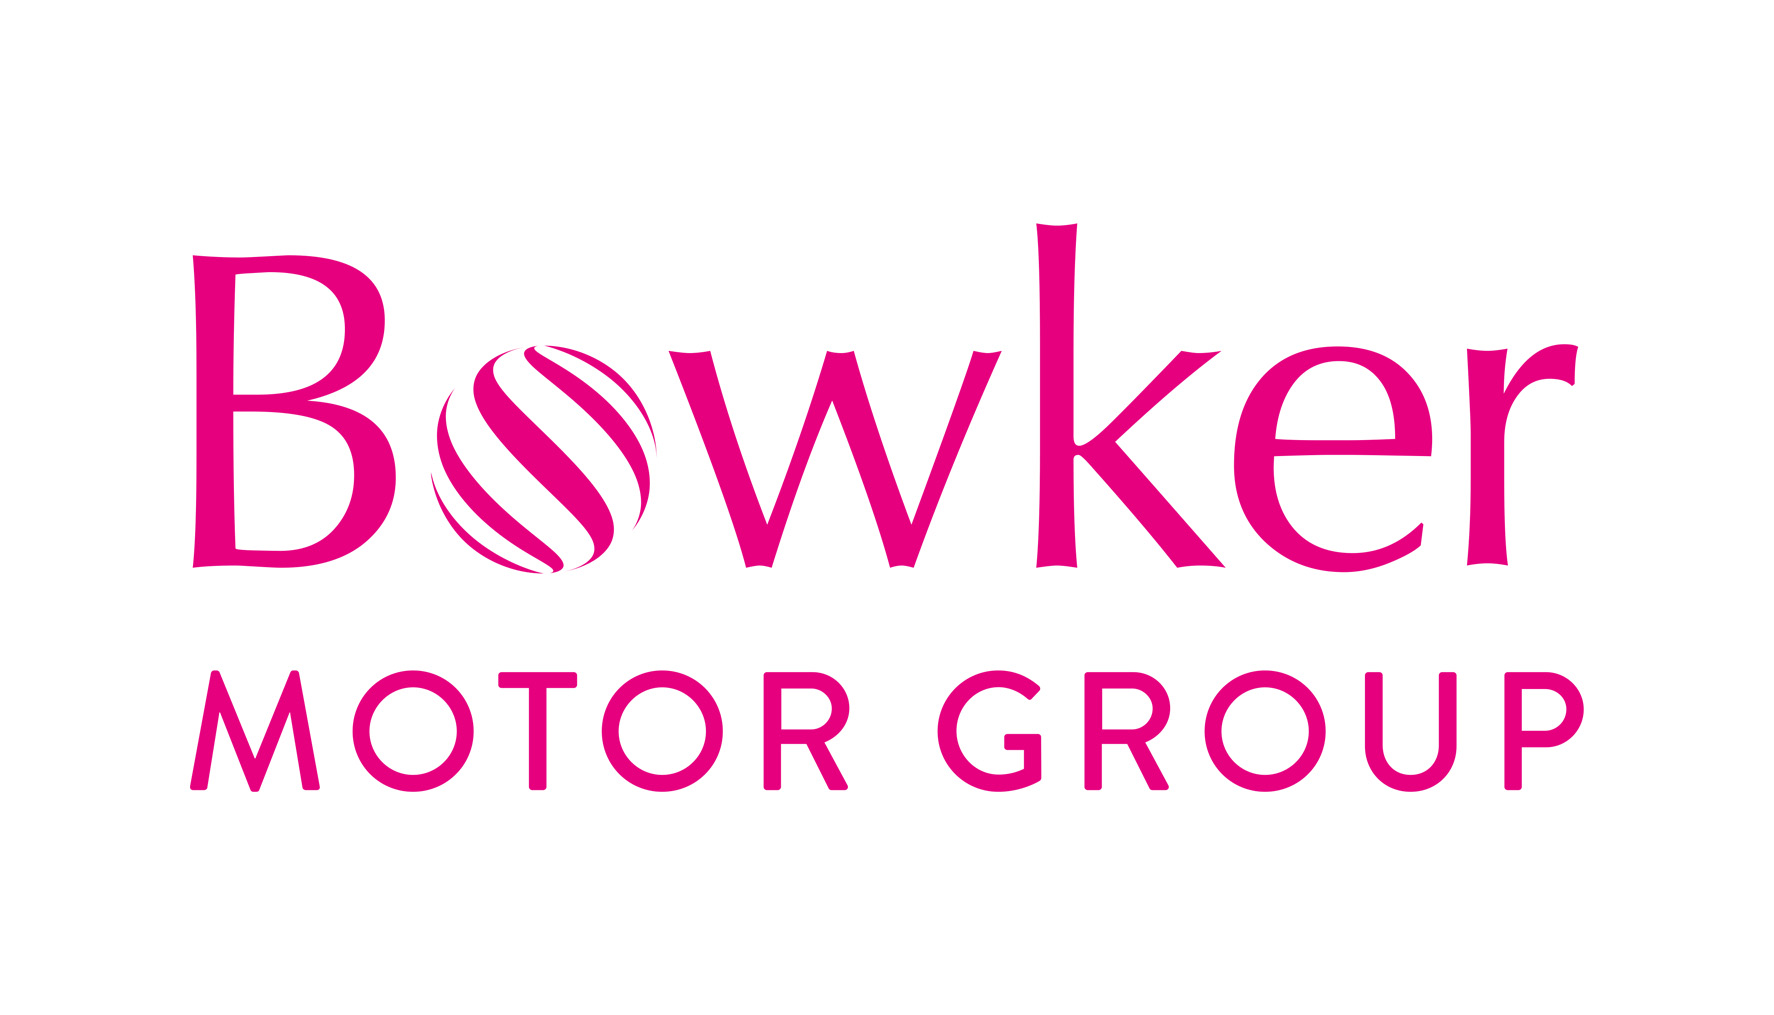 Bowker Motor Group